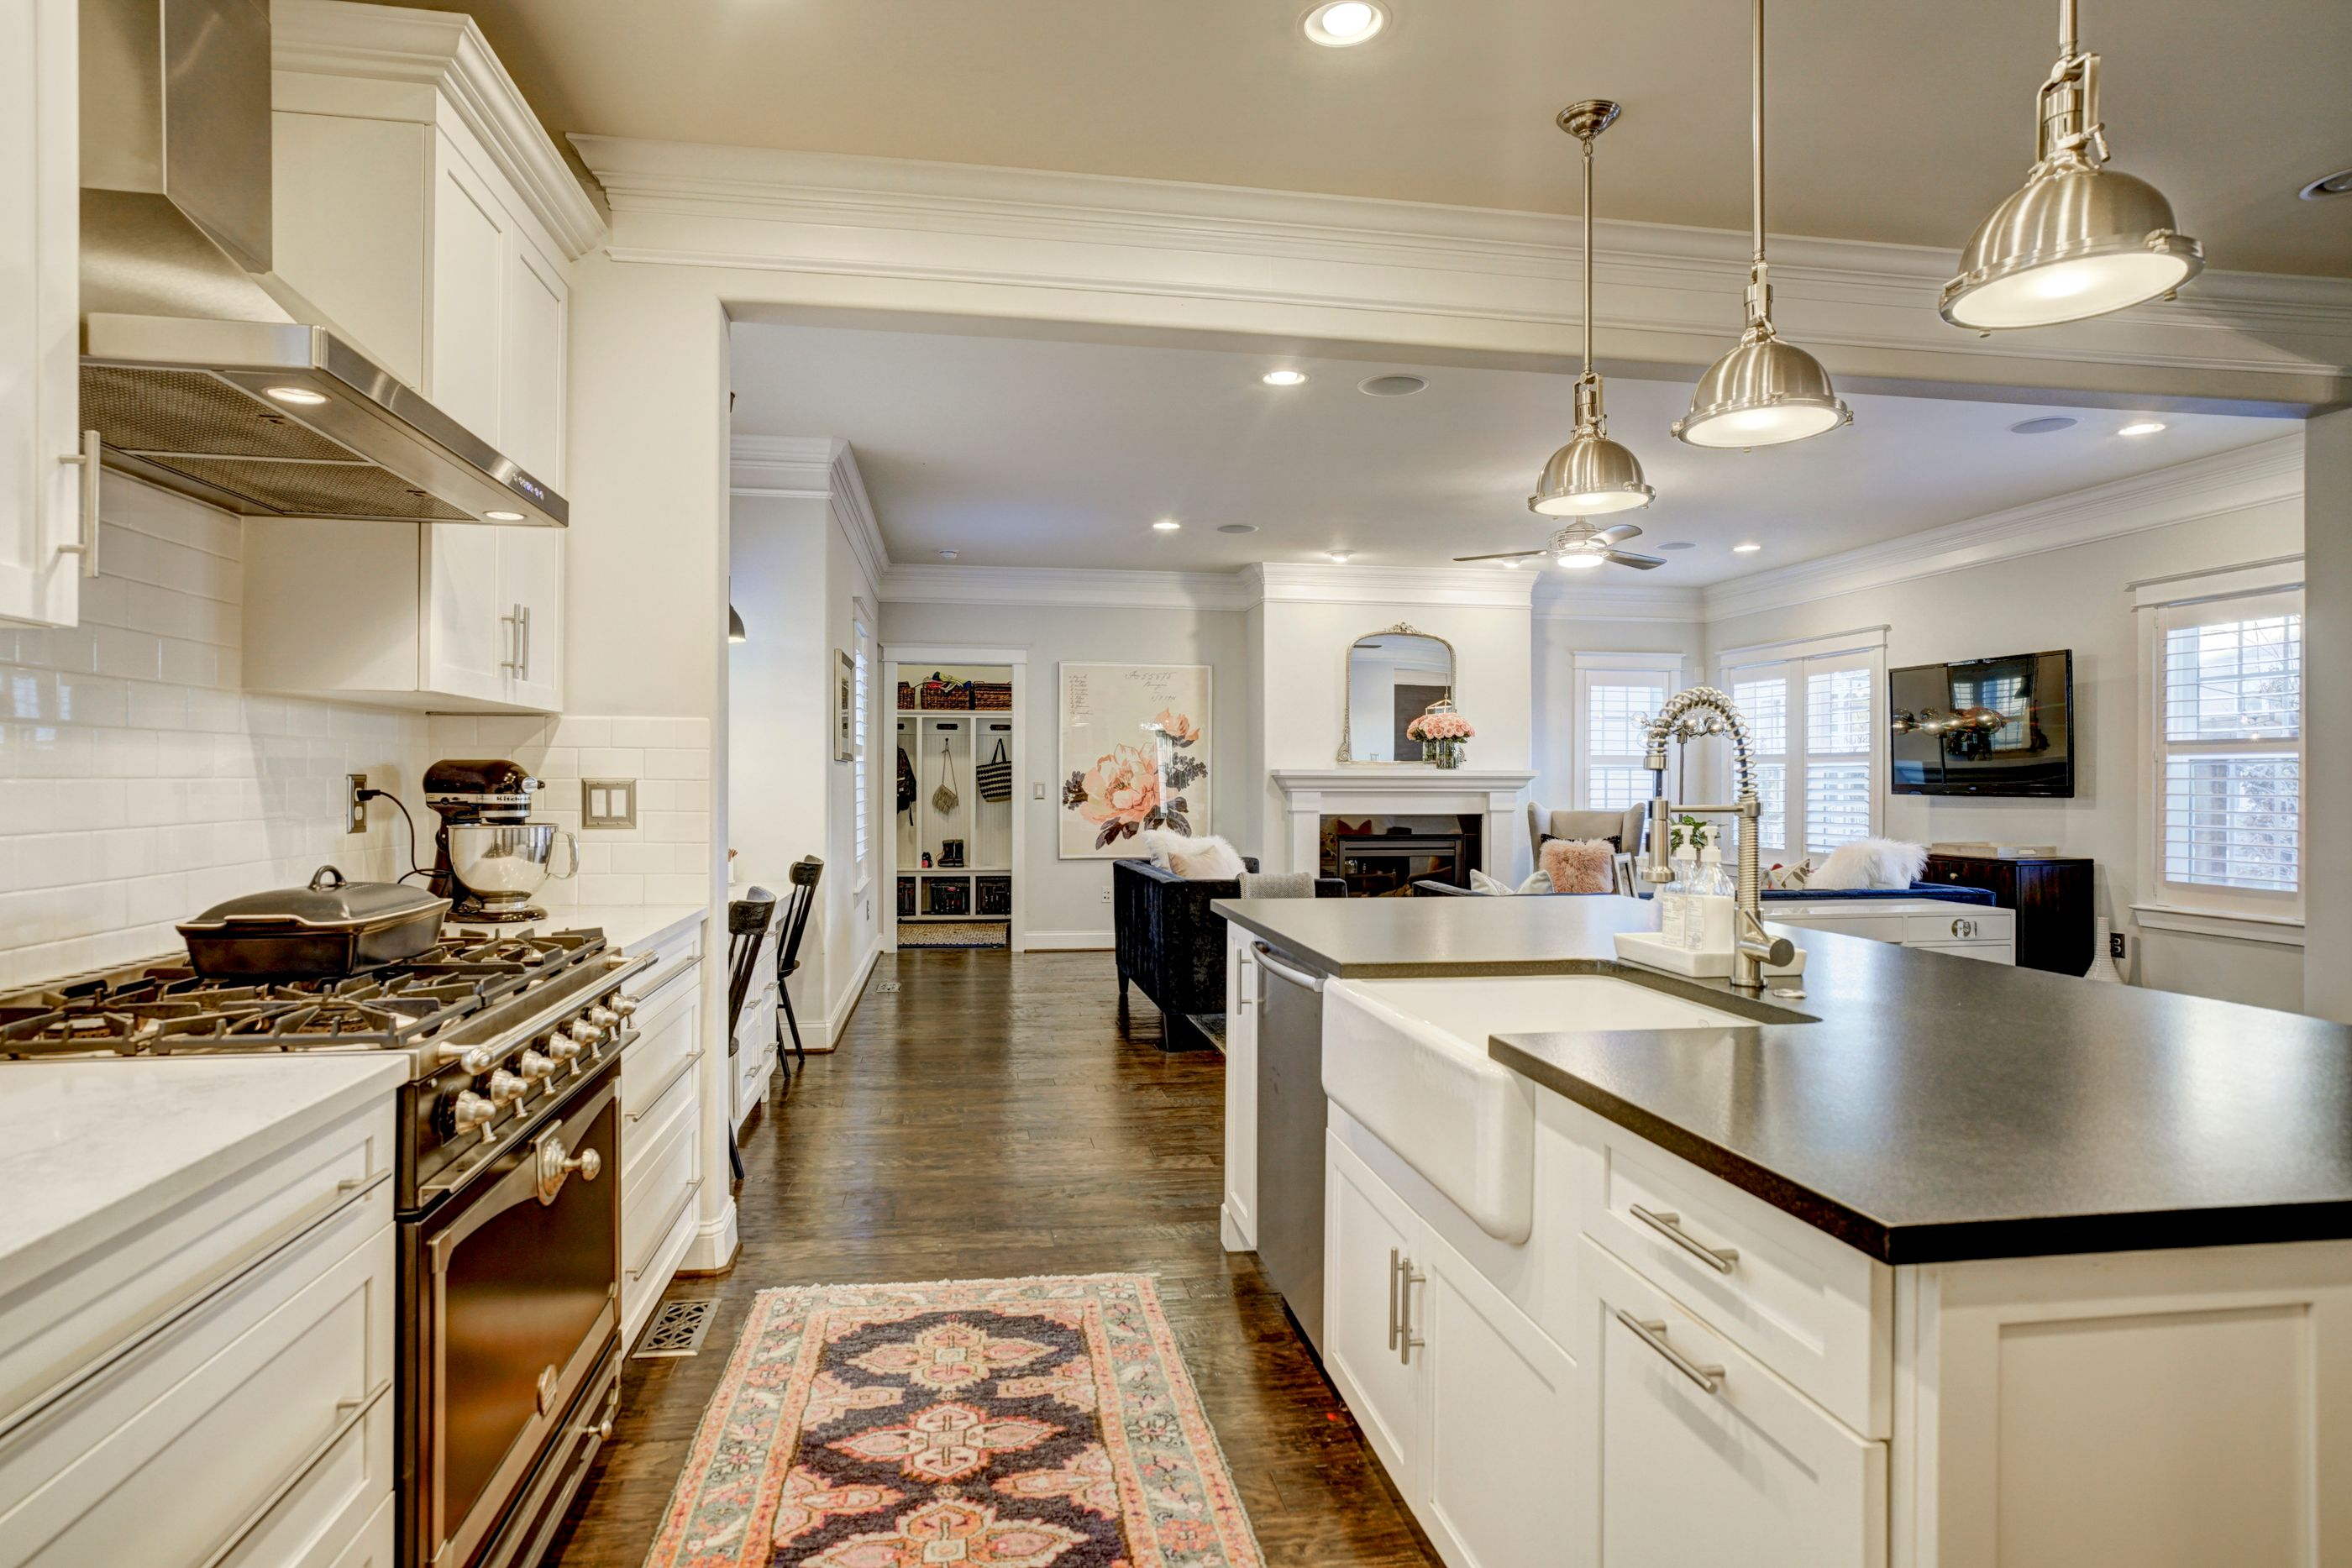 Kitchen featured in The Chestertown - Shenandoah Collection By Parkwood Homes in Denver, CO